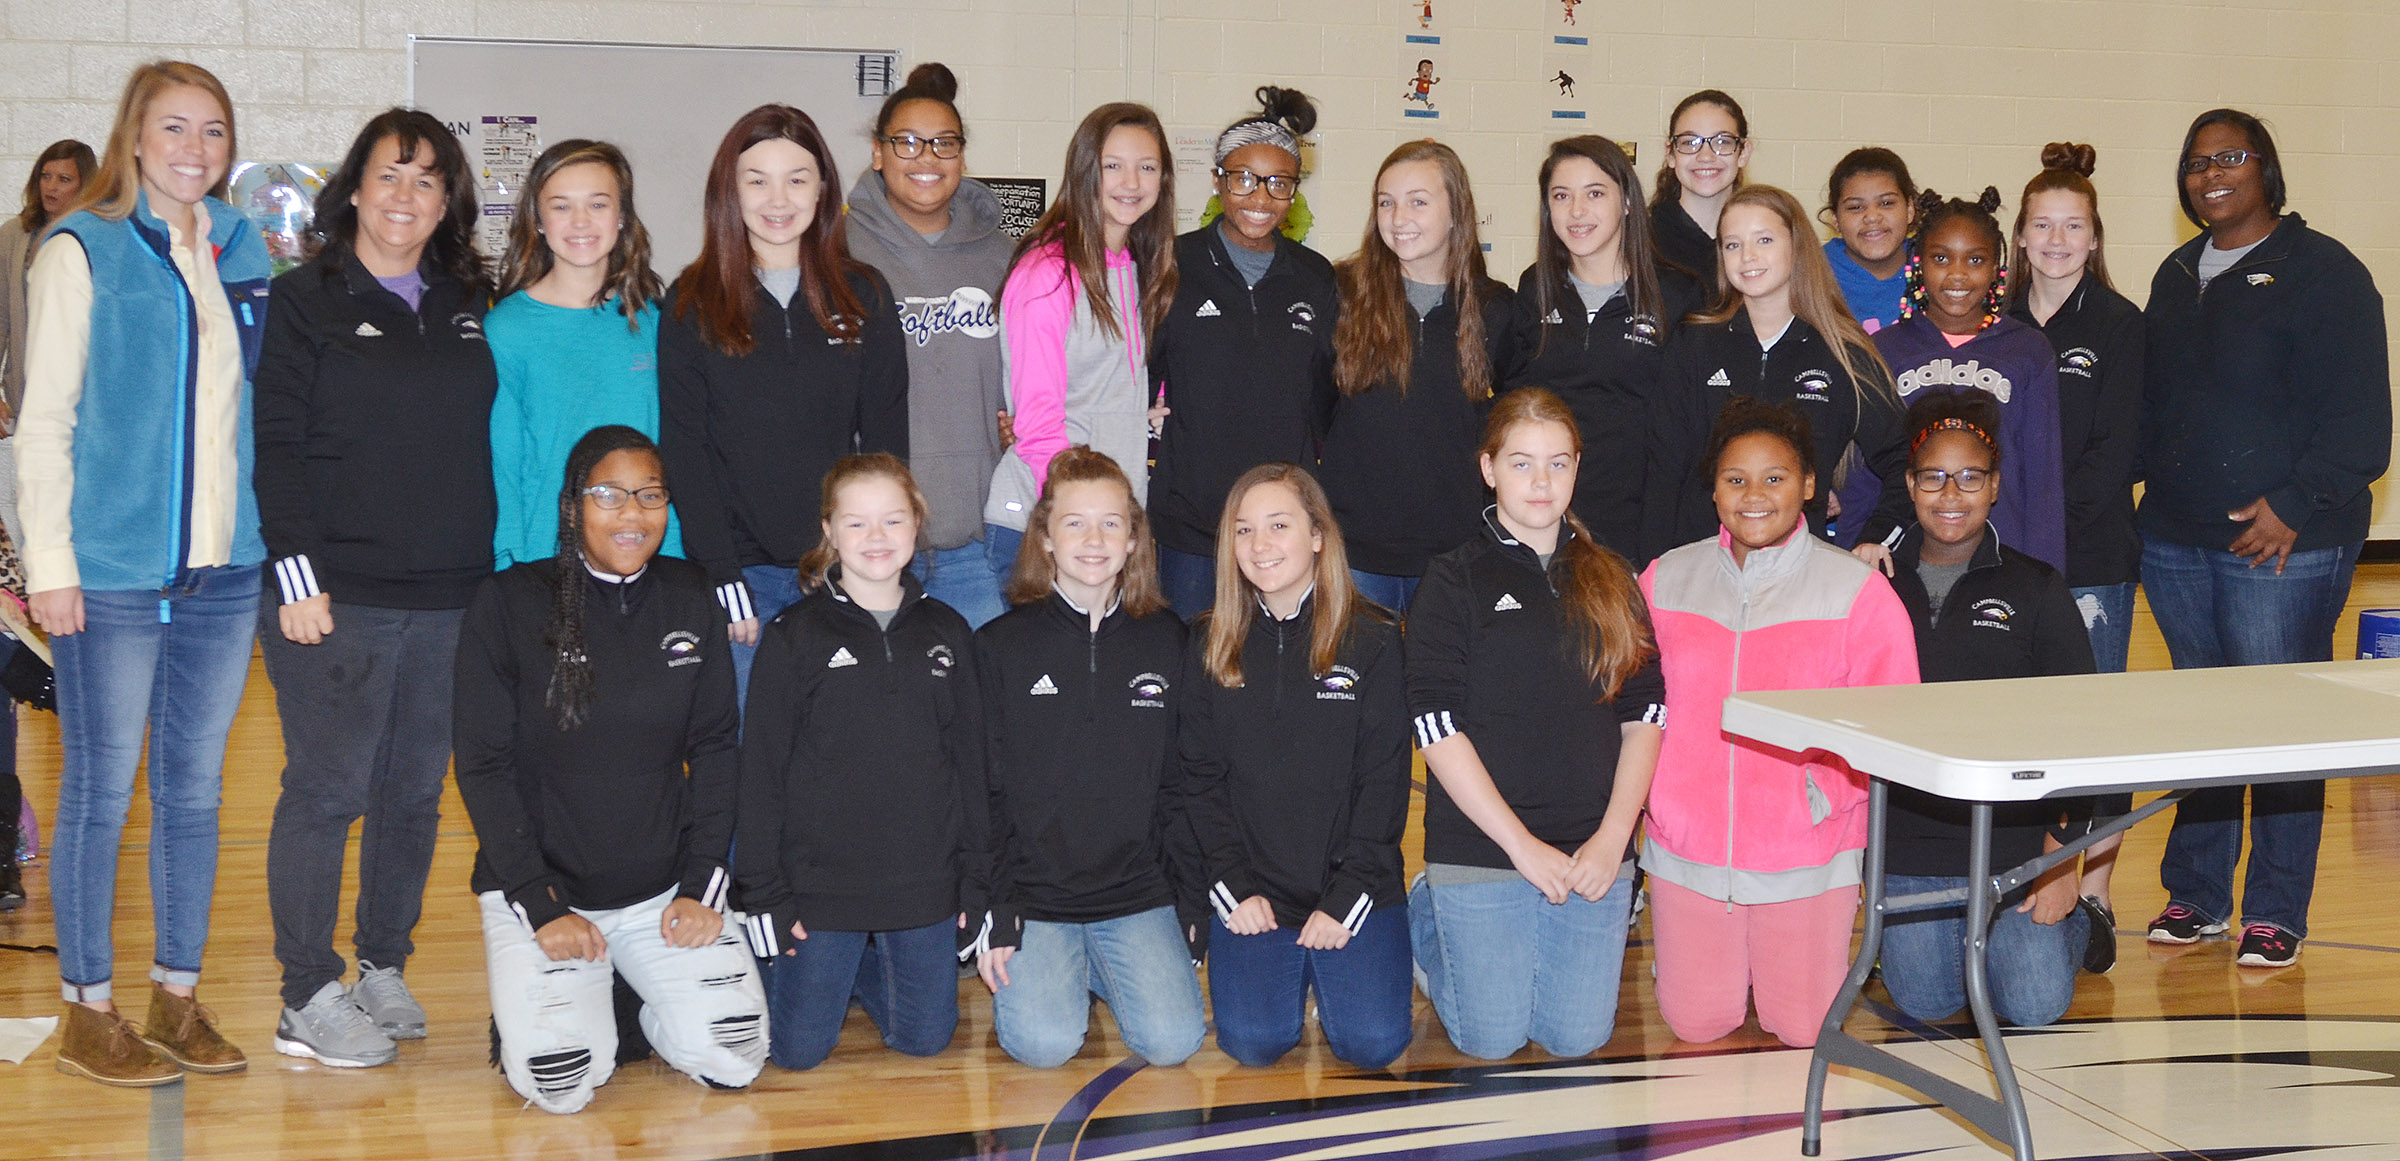 Campbellsville Middle School girls' basketball players were honored at the Campbellsville Elementary School assembly on Friday, Nov. 10.